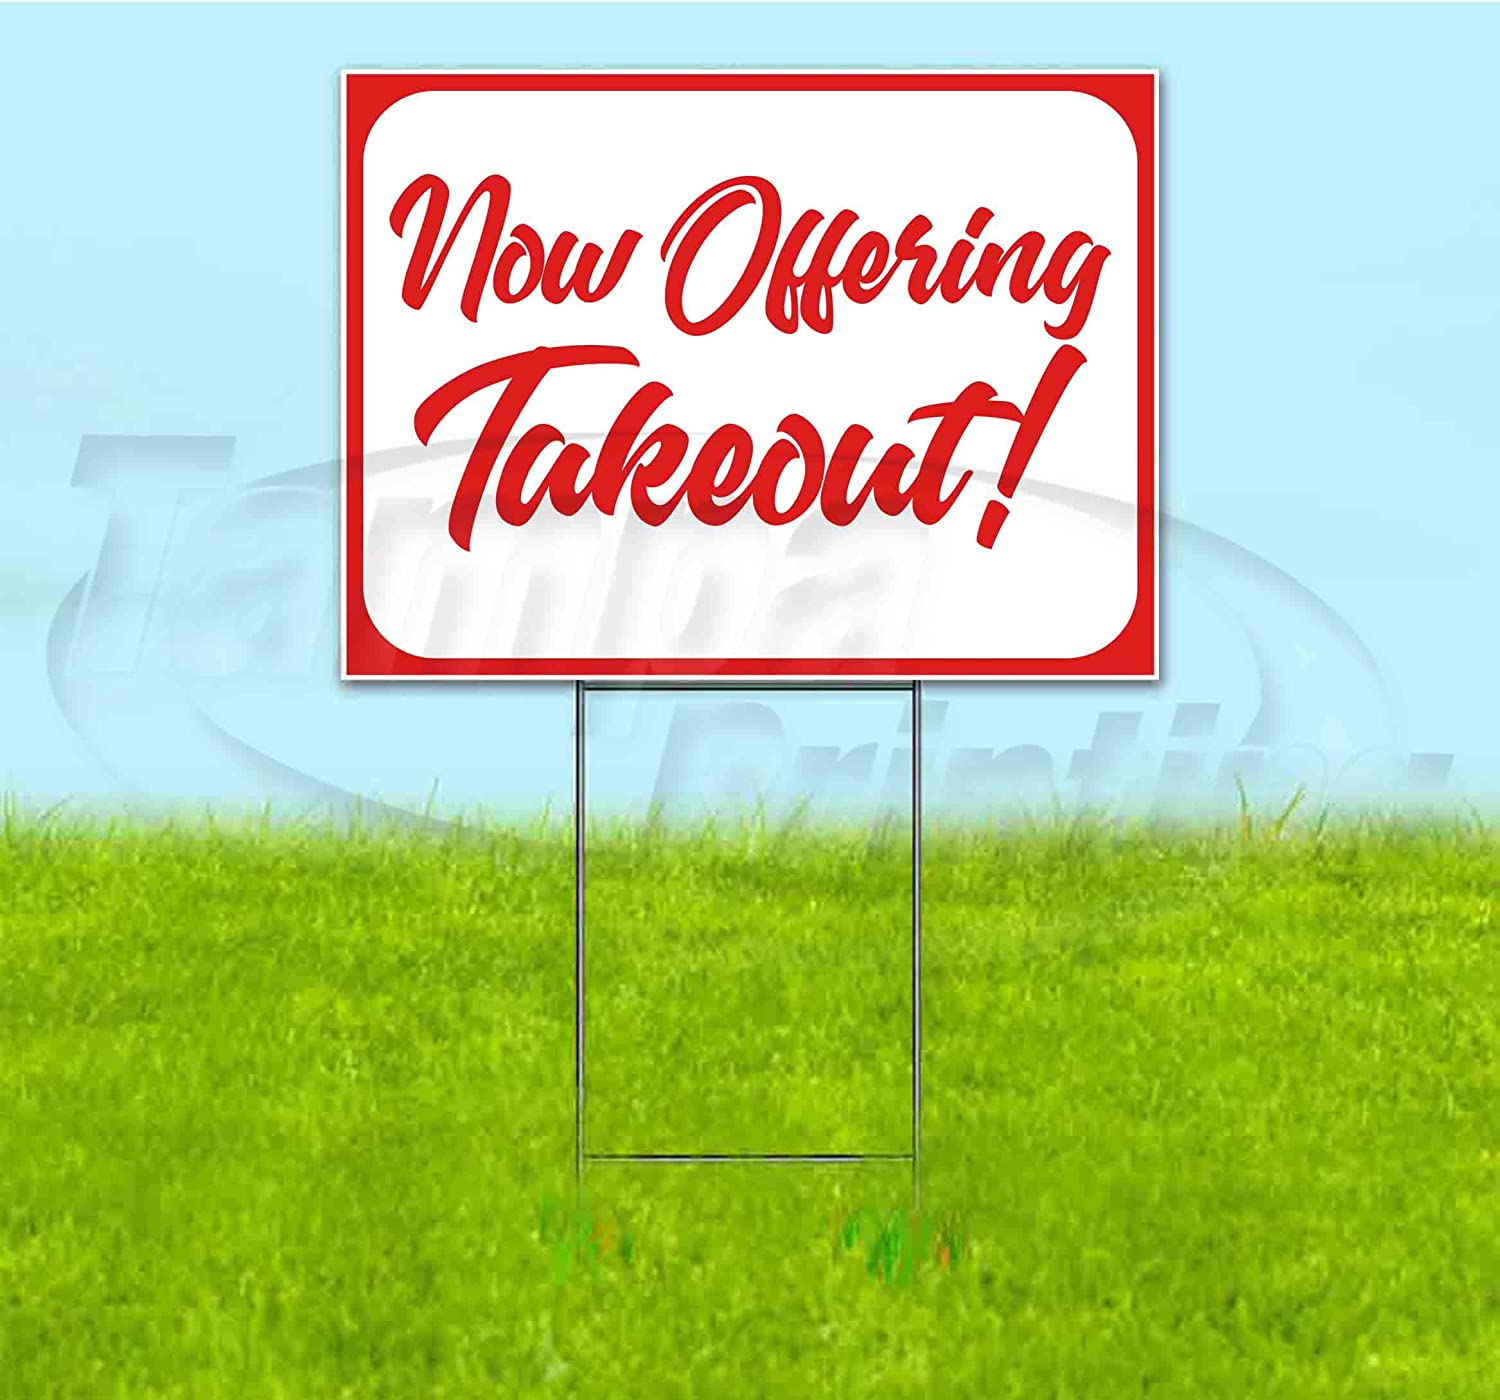 Now Offering Takeout 18